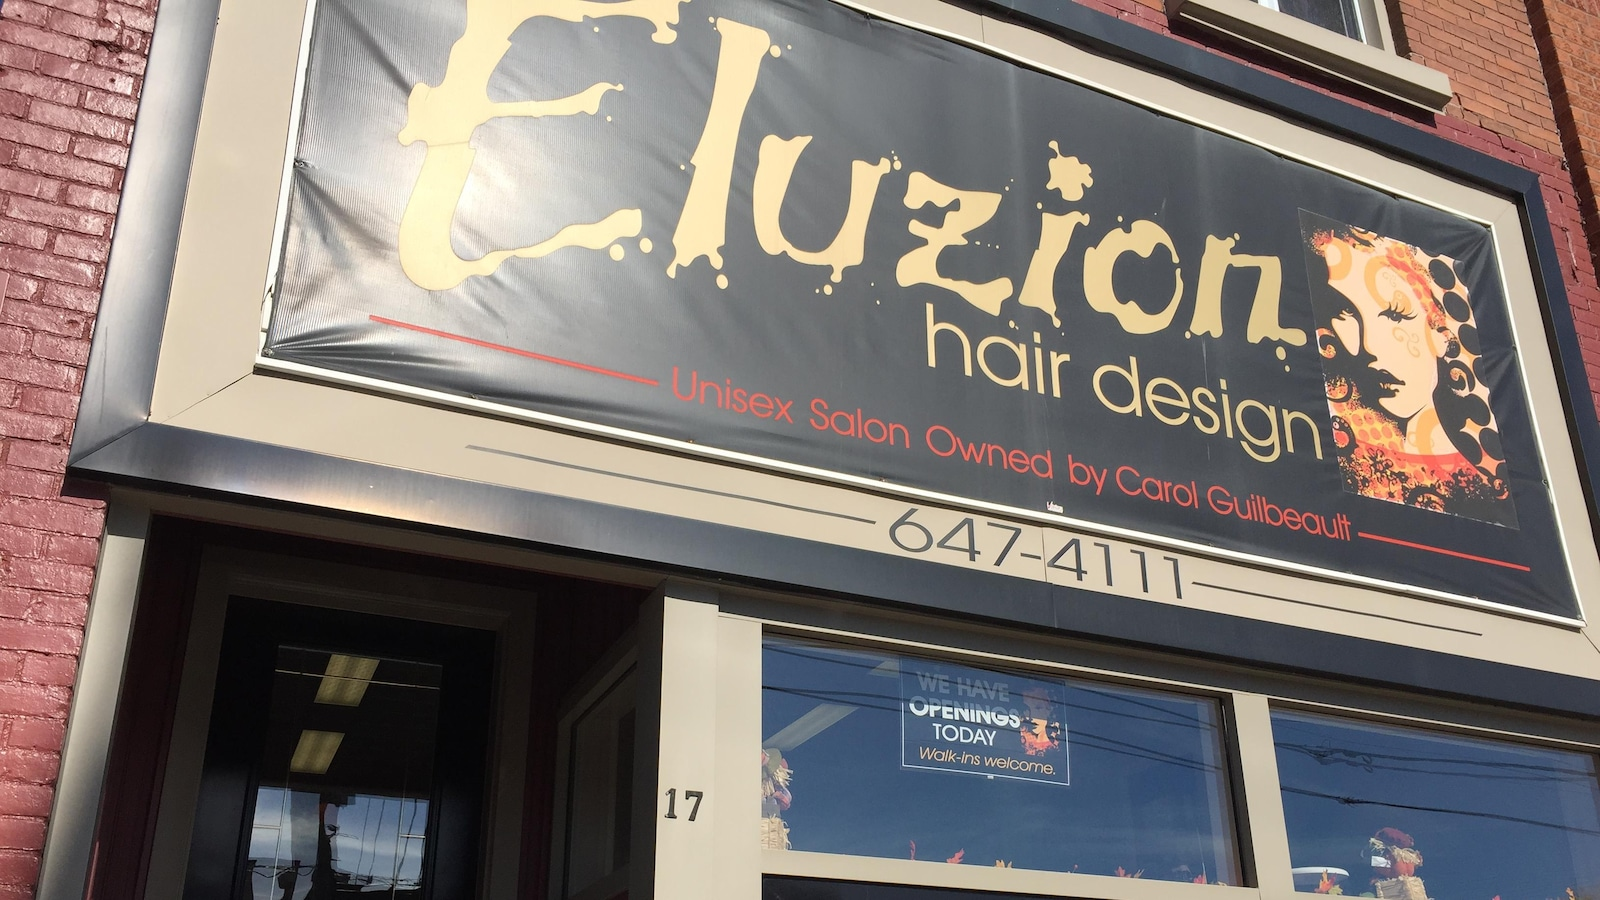 La devanture du salon de coiffure Eluzion hair design.